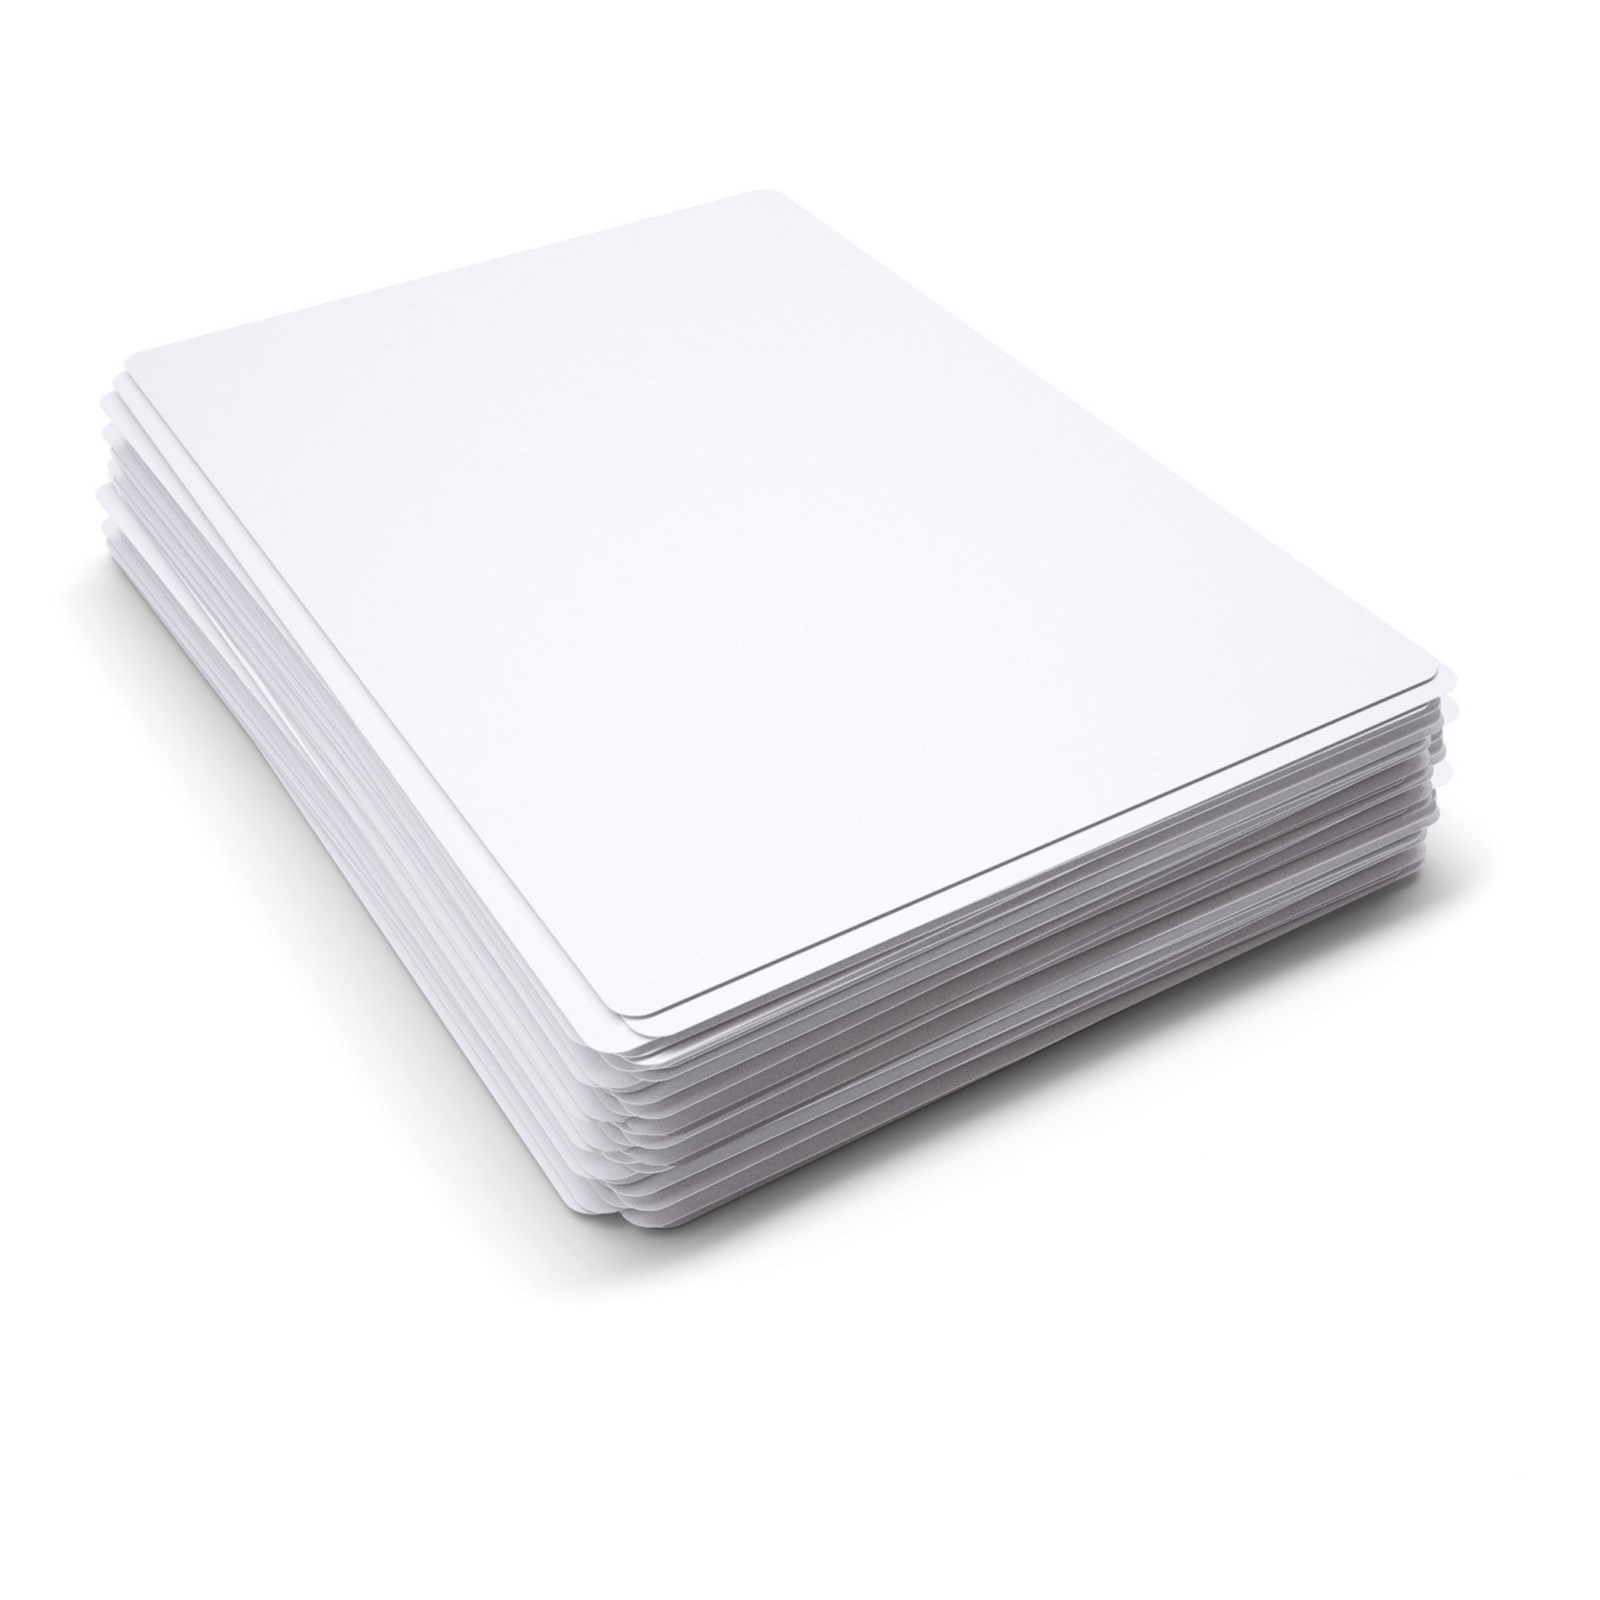 Lightweight Whiteboards -  Non Mag - P35